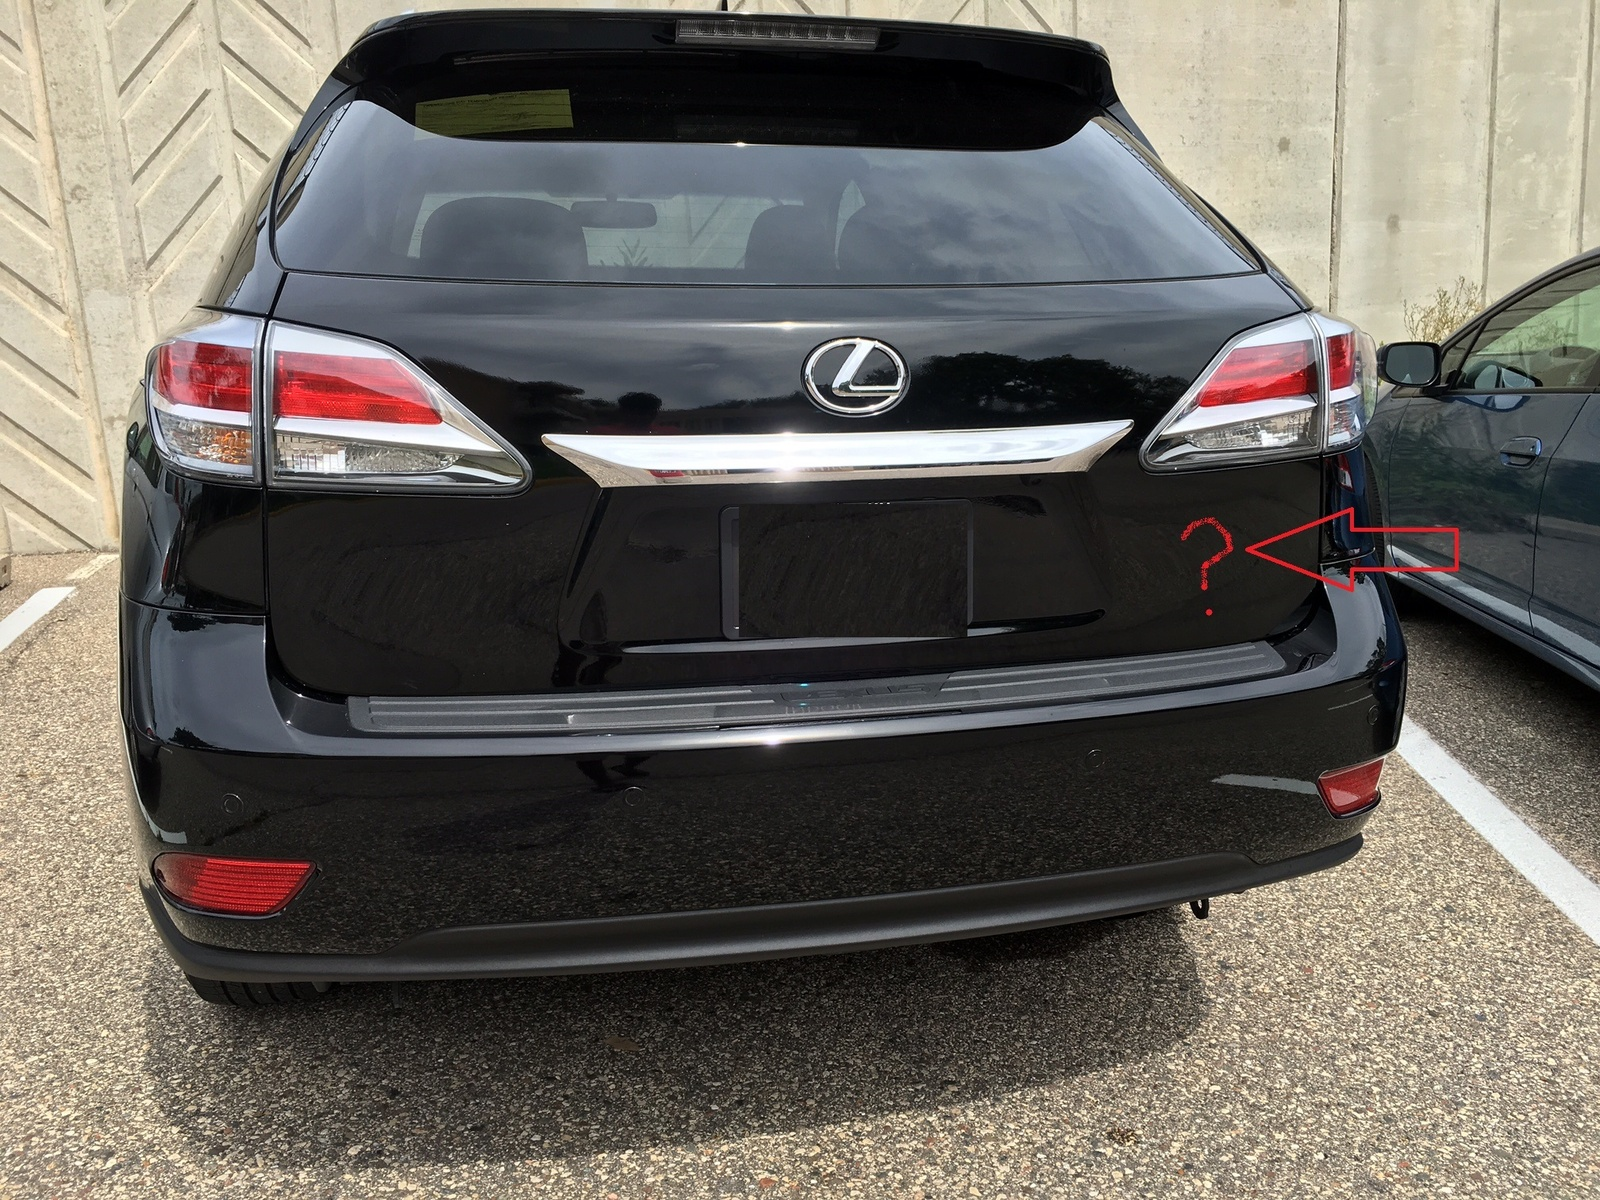 Lexus RX 350 Questions - RX350 model badge is missing on my 2015 ...